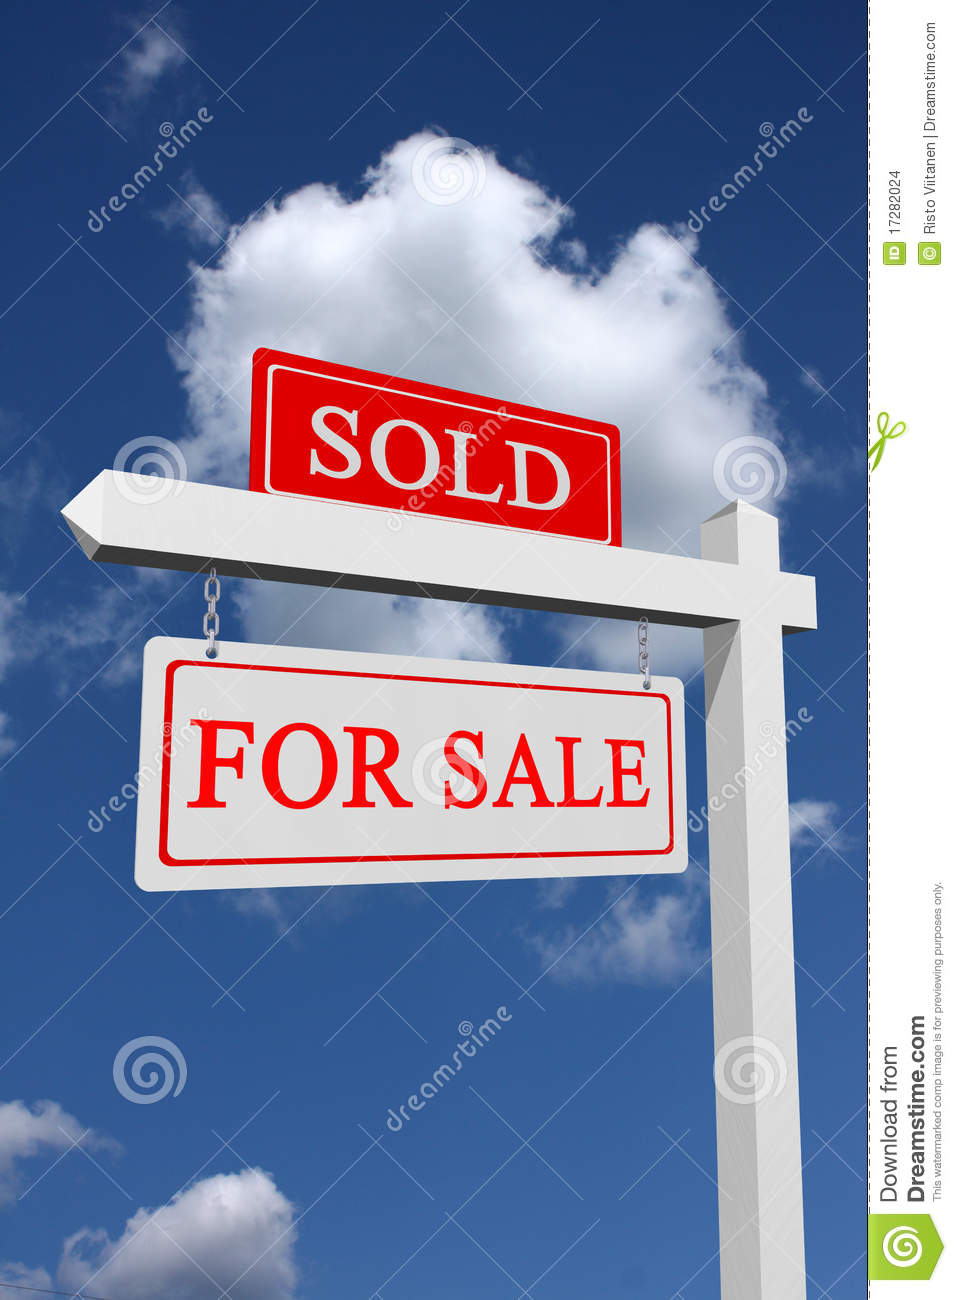 For Sale Sold Sign: For Sale And Sold Sign Stock Photo. Image Of Sell, Profit